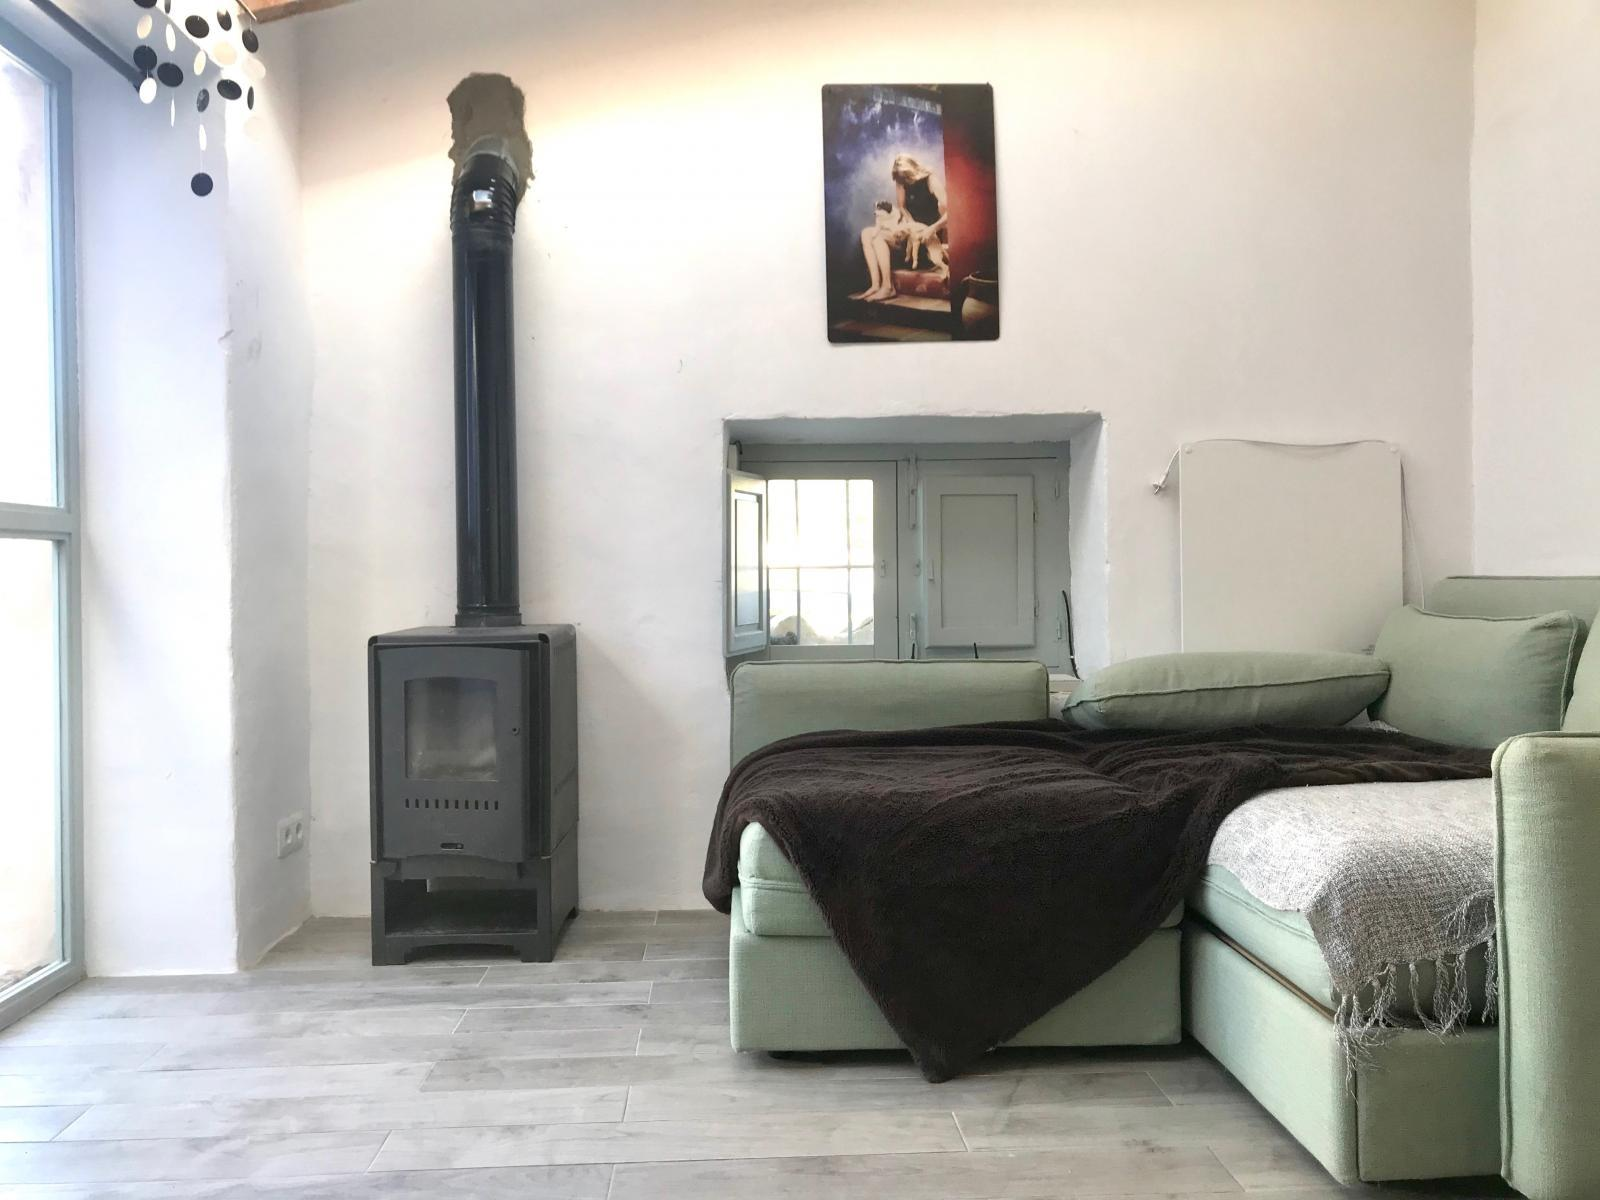 39564418 3303414 foto 493789 - Outdoor life in this charming townhouse in Velez-Málaga